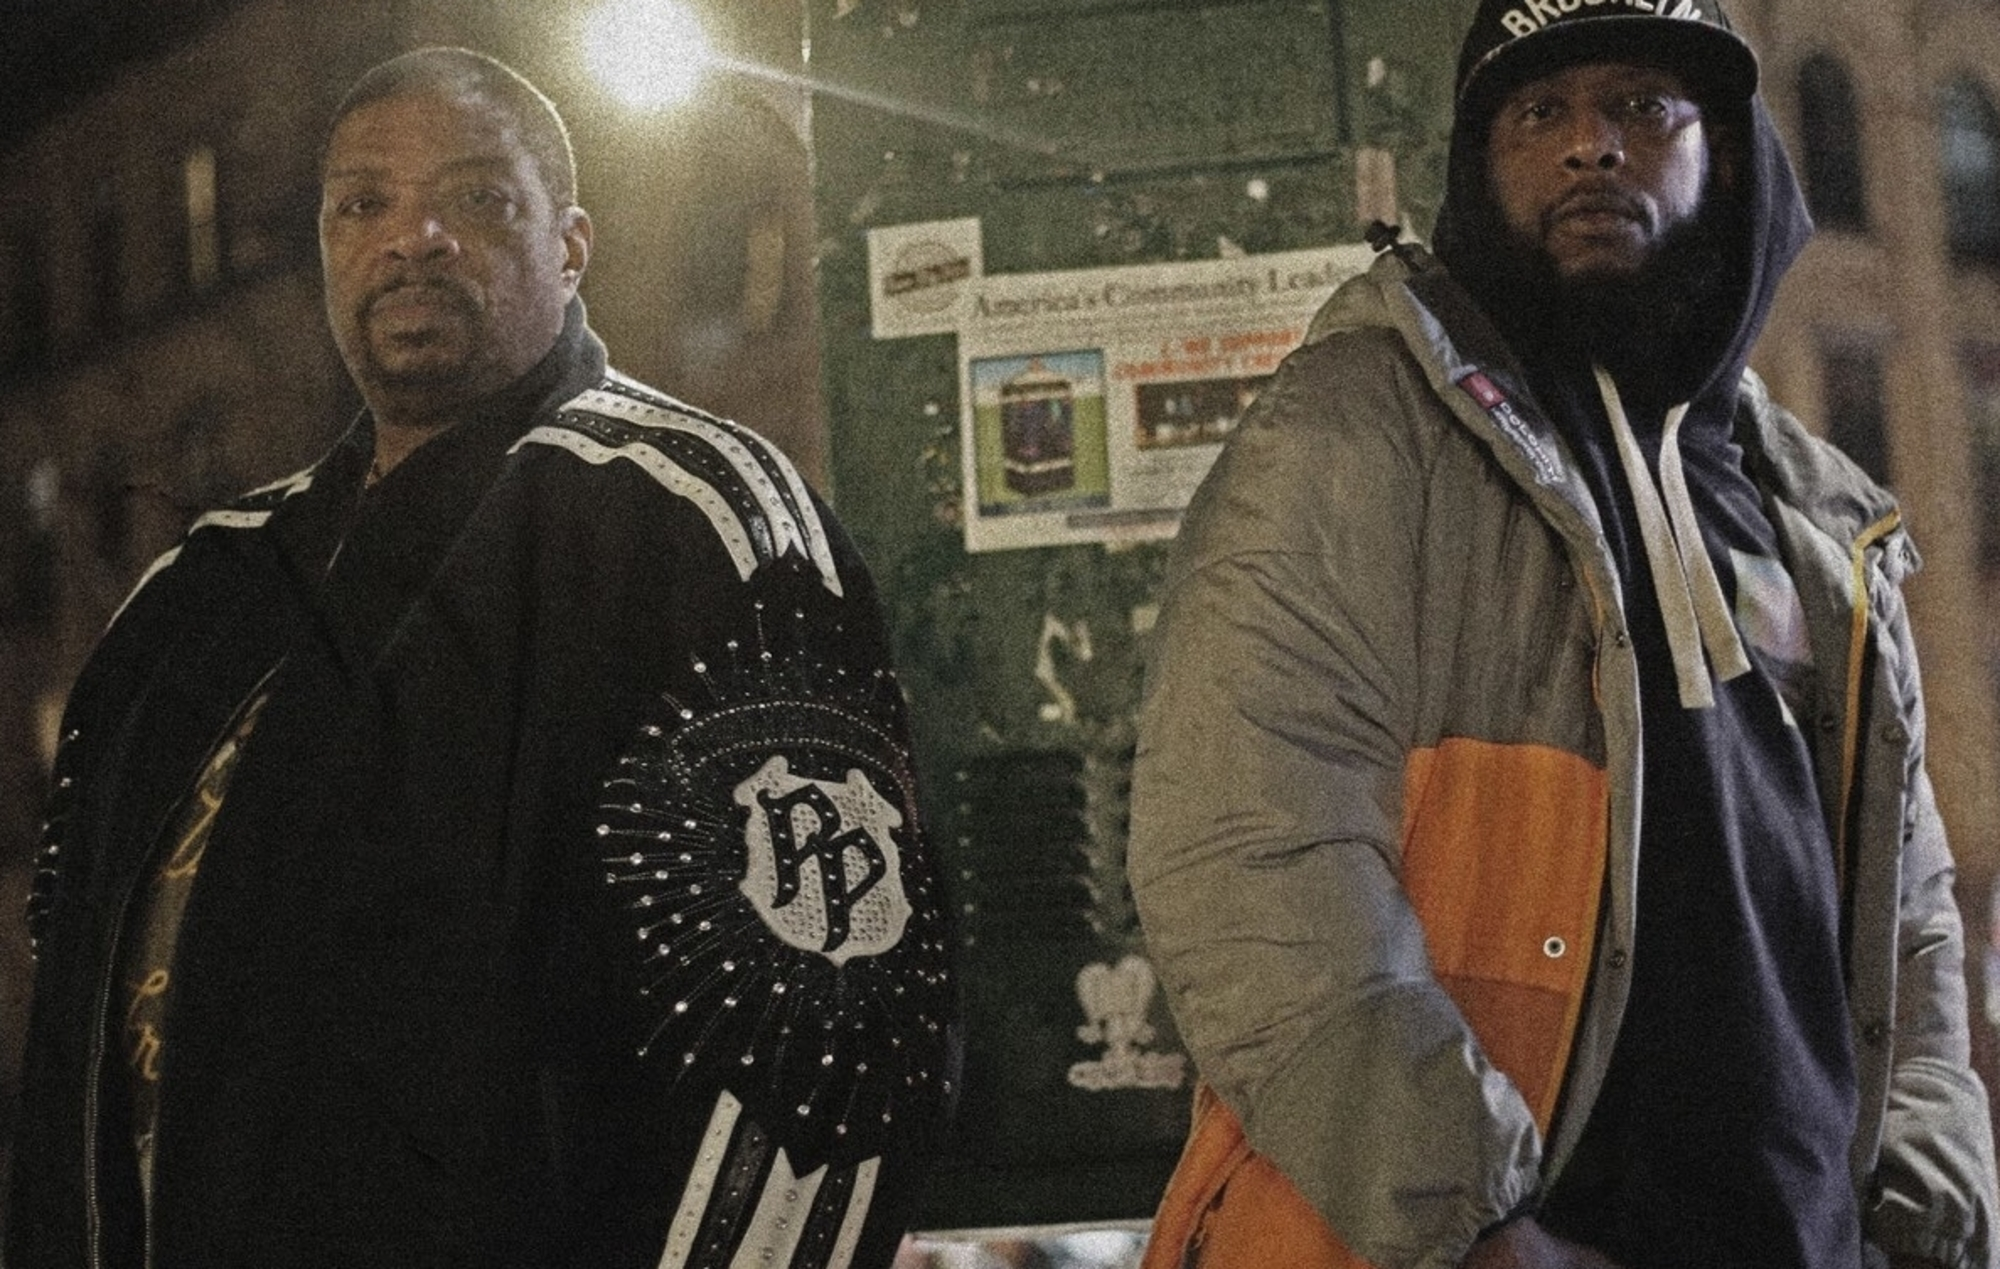 Talib Kweli and Diamond D as Gotham share new single with Busta Rhymes